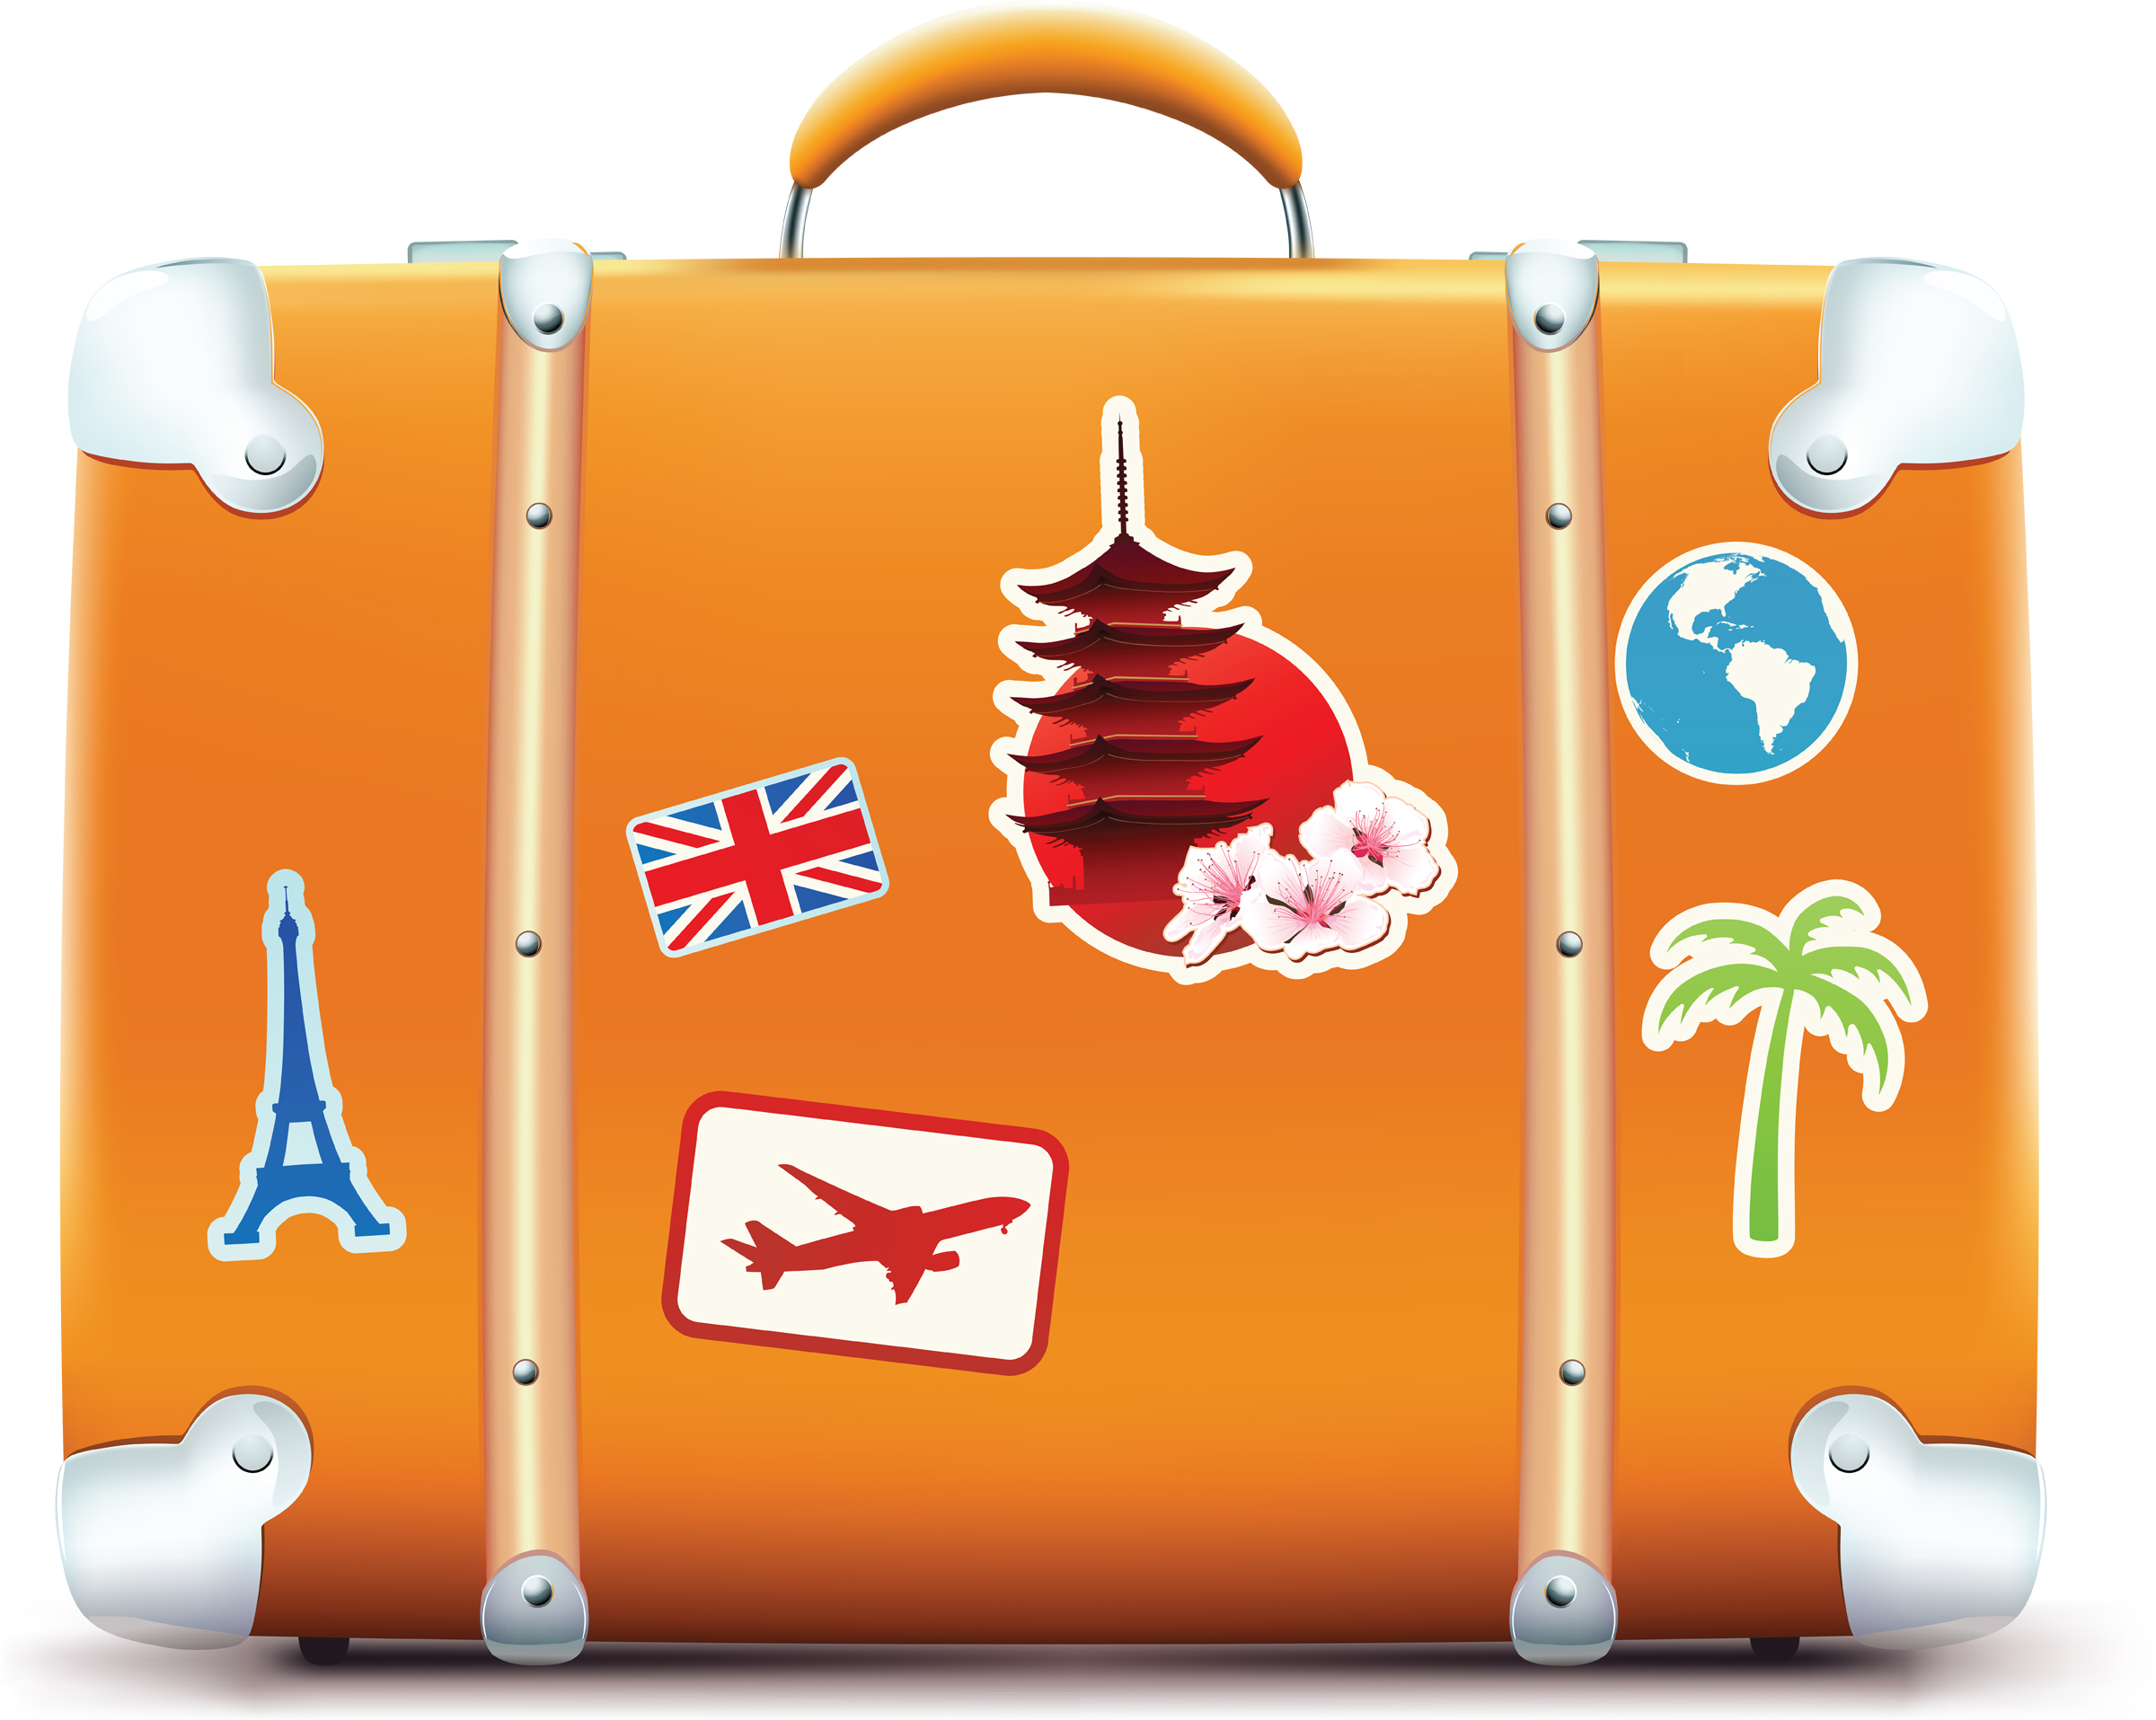 Travel Suitcase Clipart - Clipart Kid